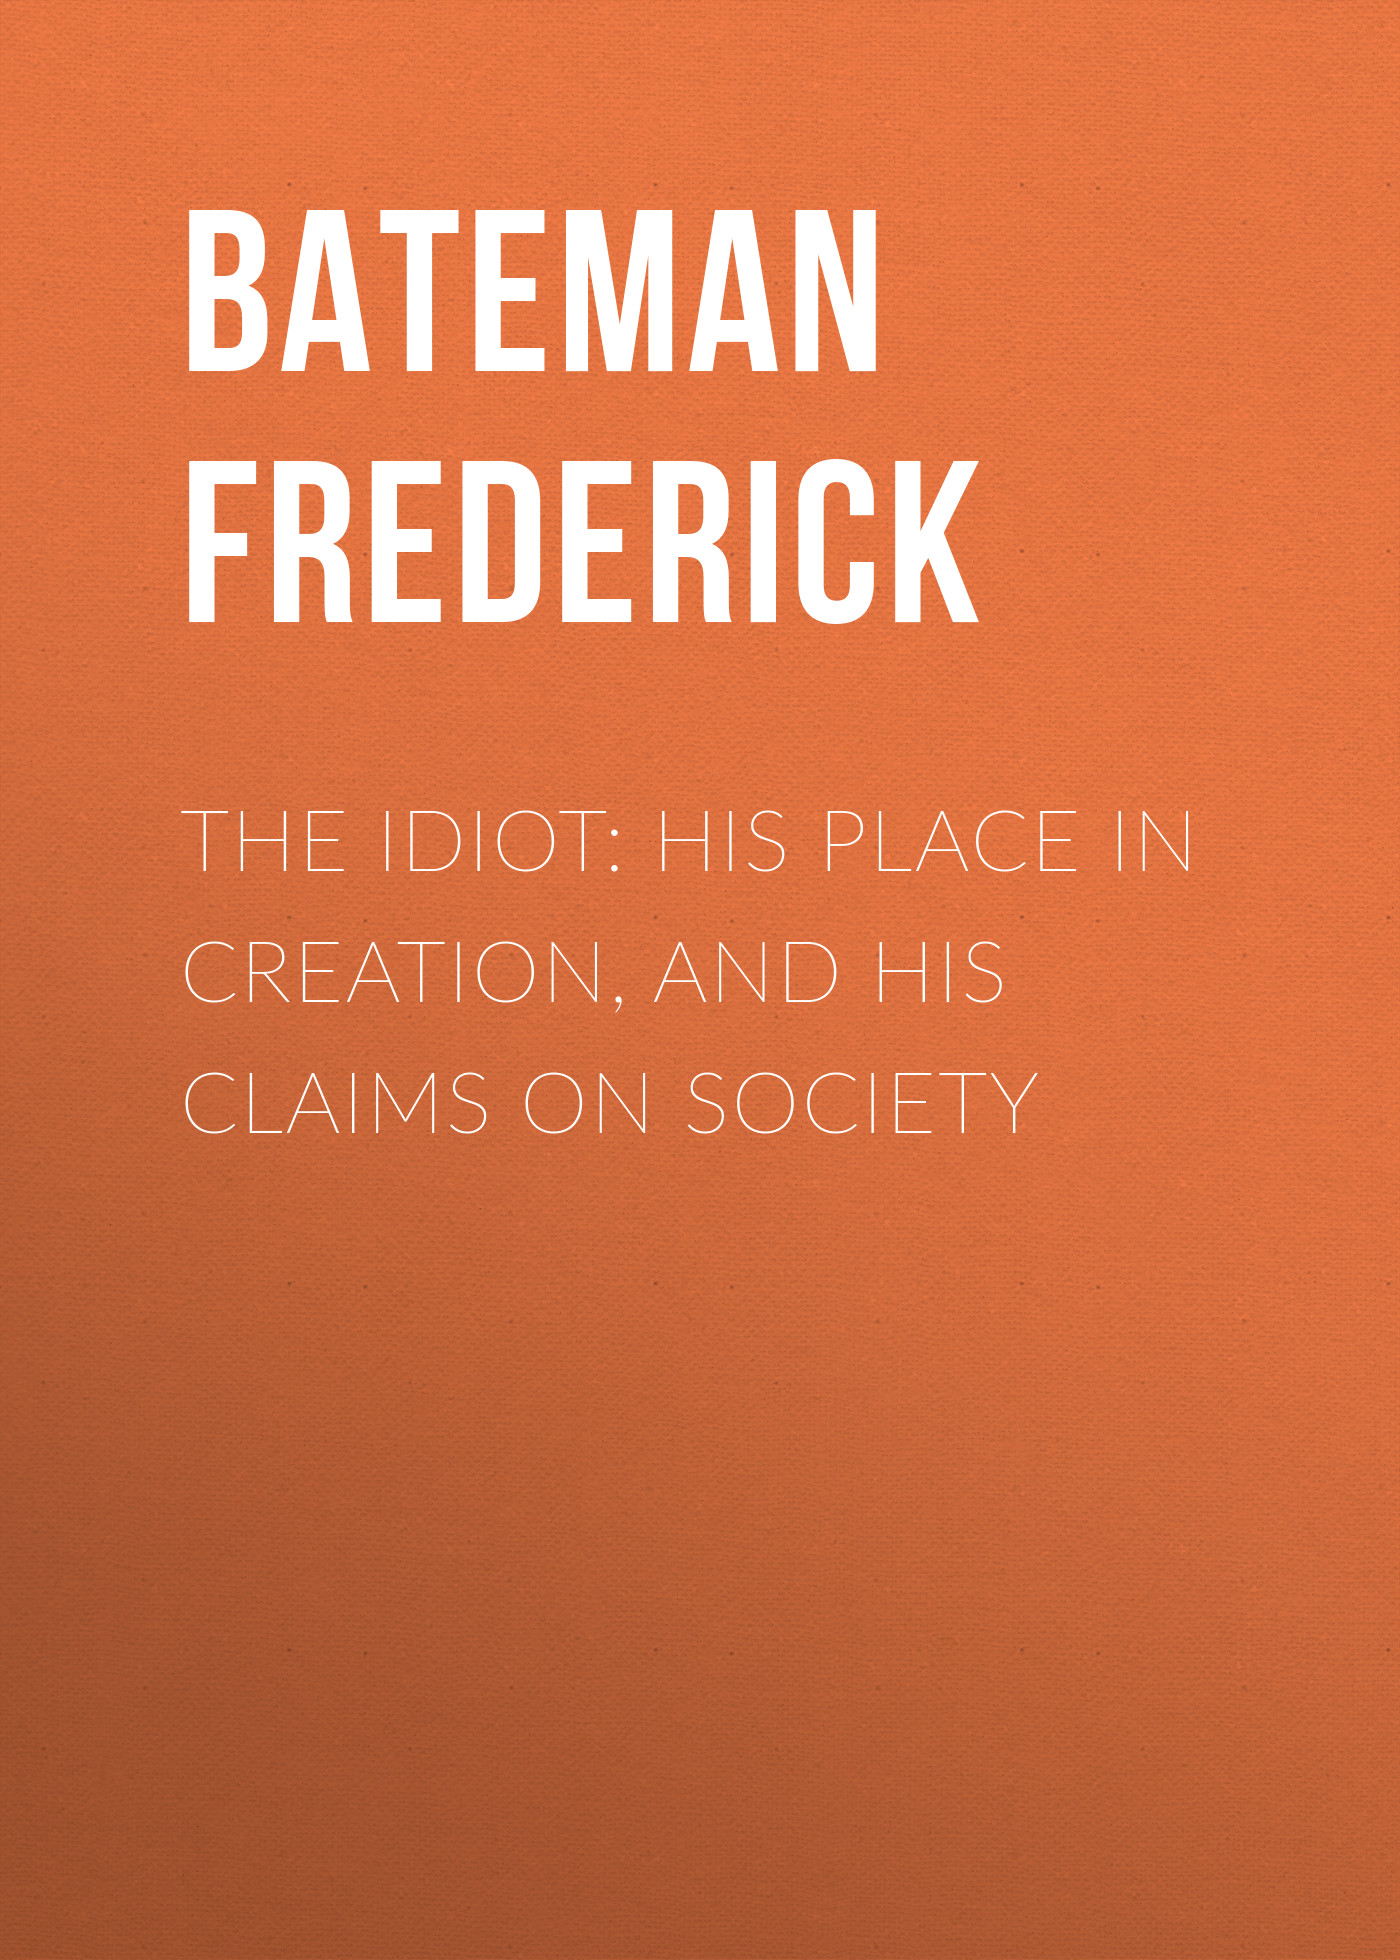 Bateman Frederick The Idiot: His Place in Creation, and His Claims on Society